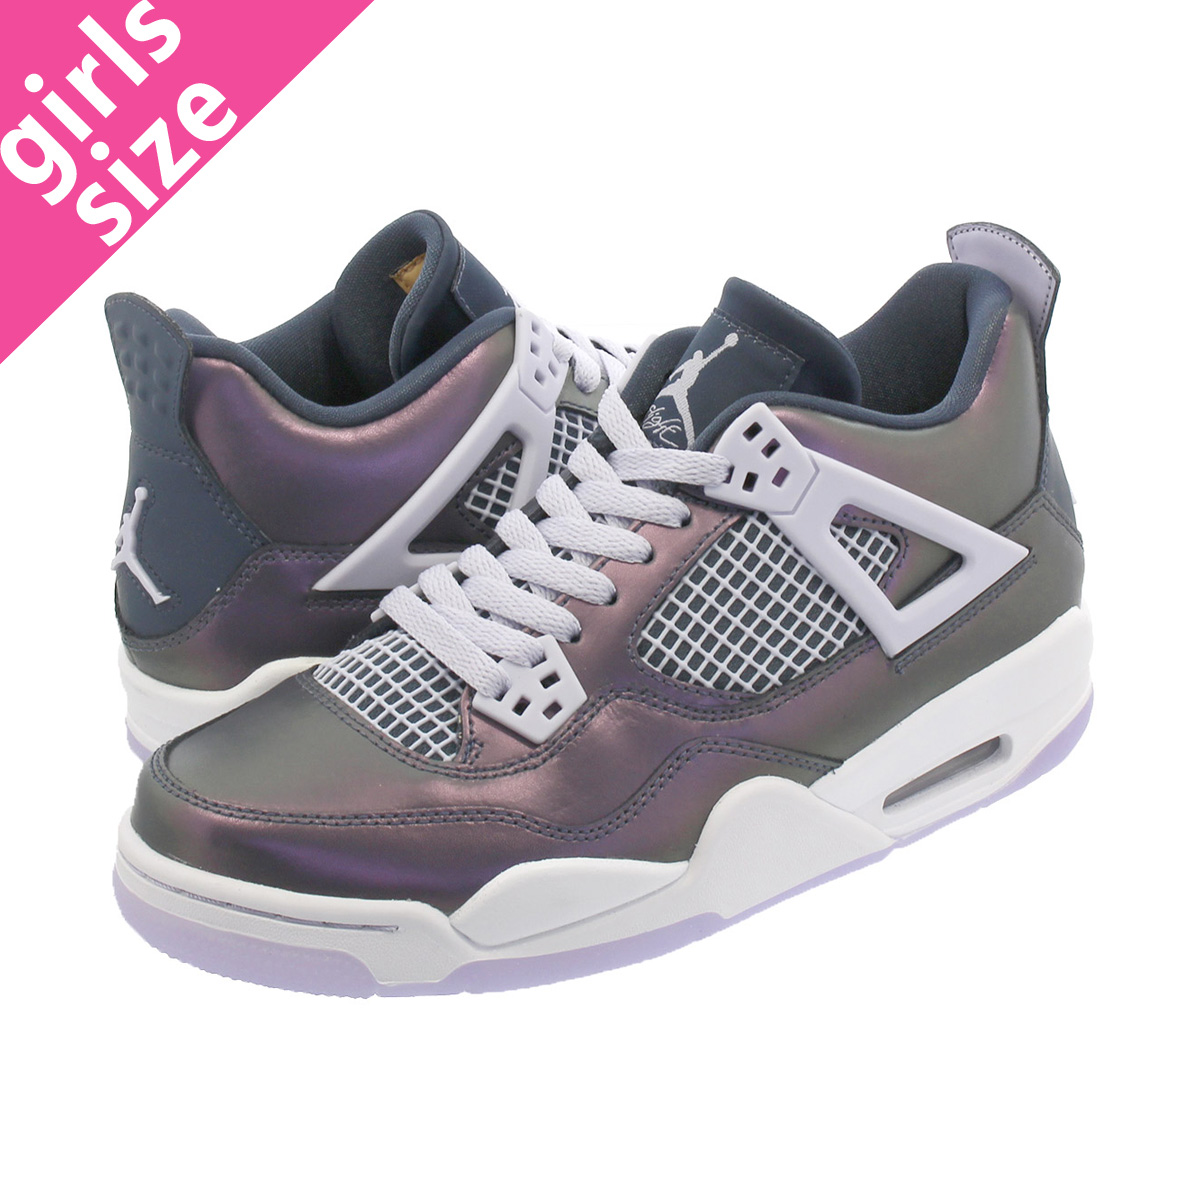 NIKE AIR JORDAN 4 RETRO SE GS ナイキ エアージョーダン4 レトロ SE GS MONSOON BLUE/ARMORY BLUE/MELON TINT bq9043-400